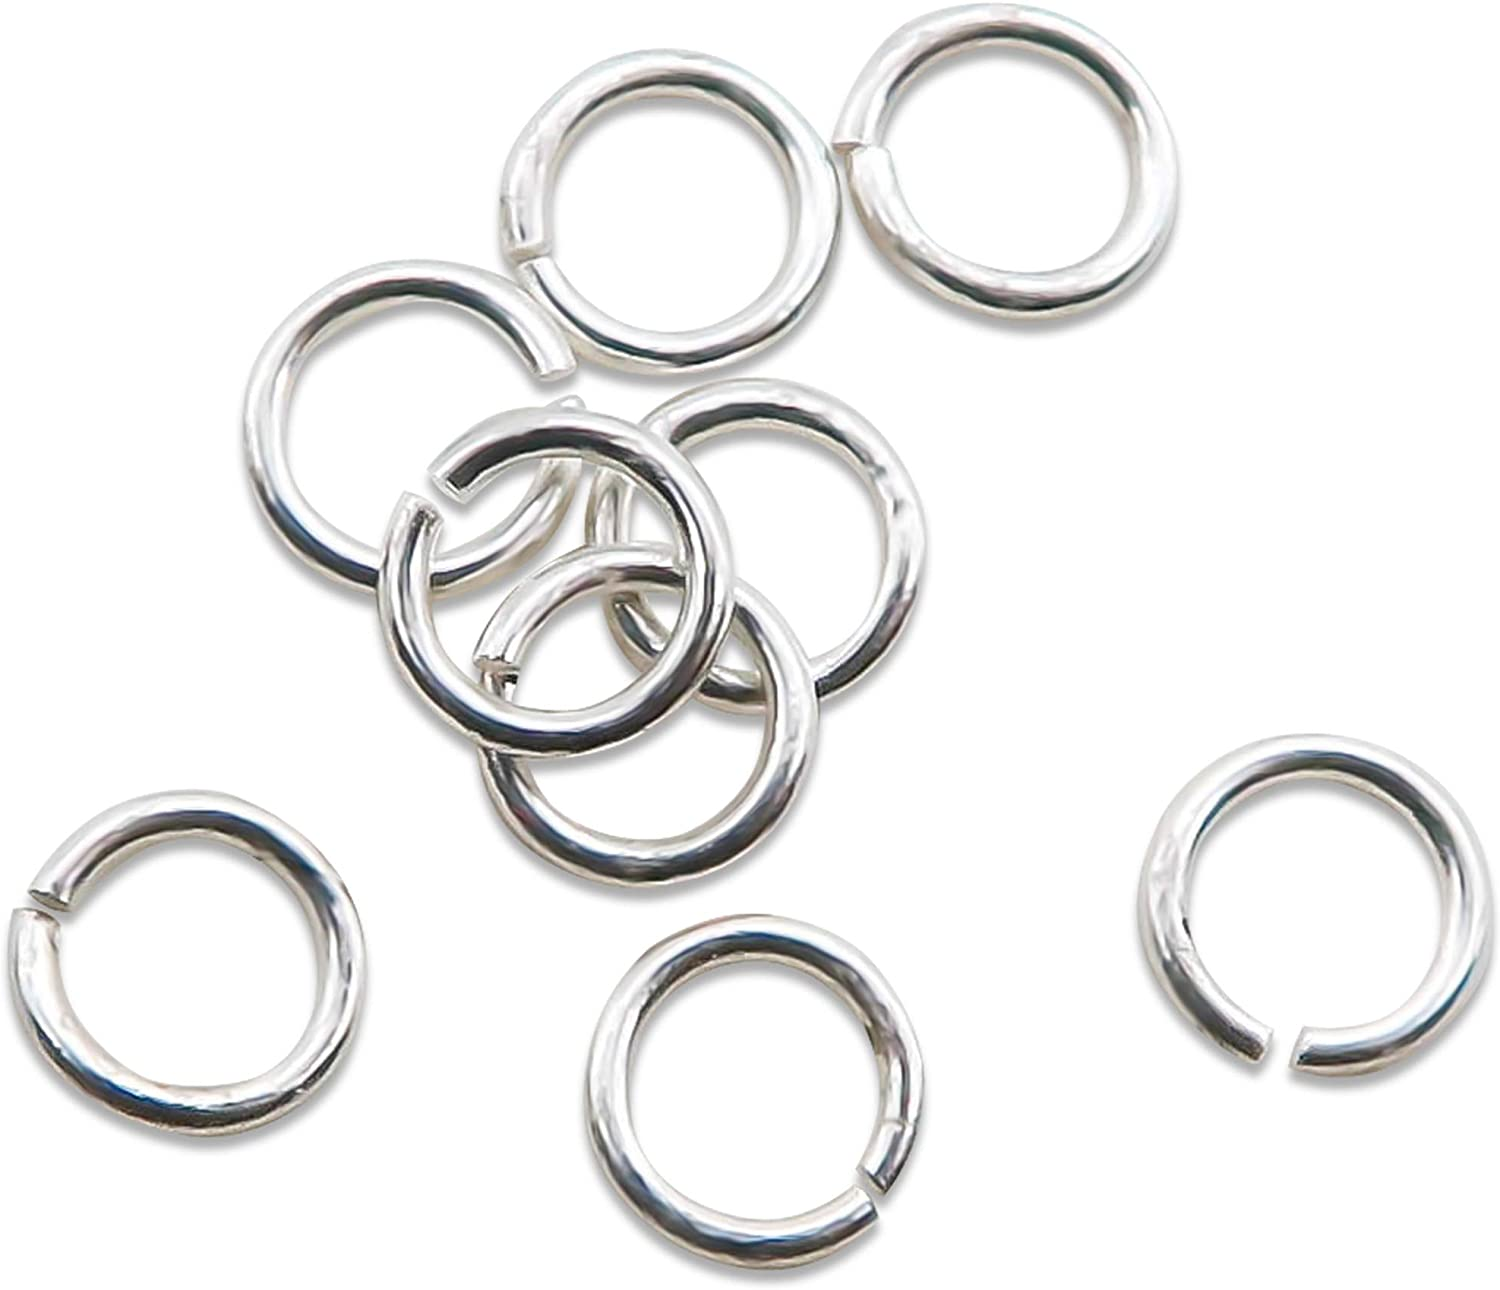 TOAOB 50pcs Earring Hooks and 50pcs 925 Sterling Silver 4mm Open Jump Rings Hypo-allergenic Starter Kit for Jewelry Making Supplies